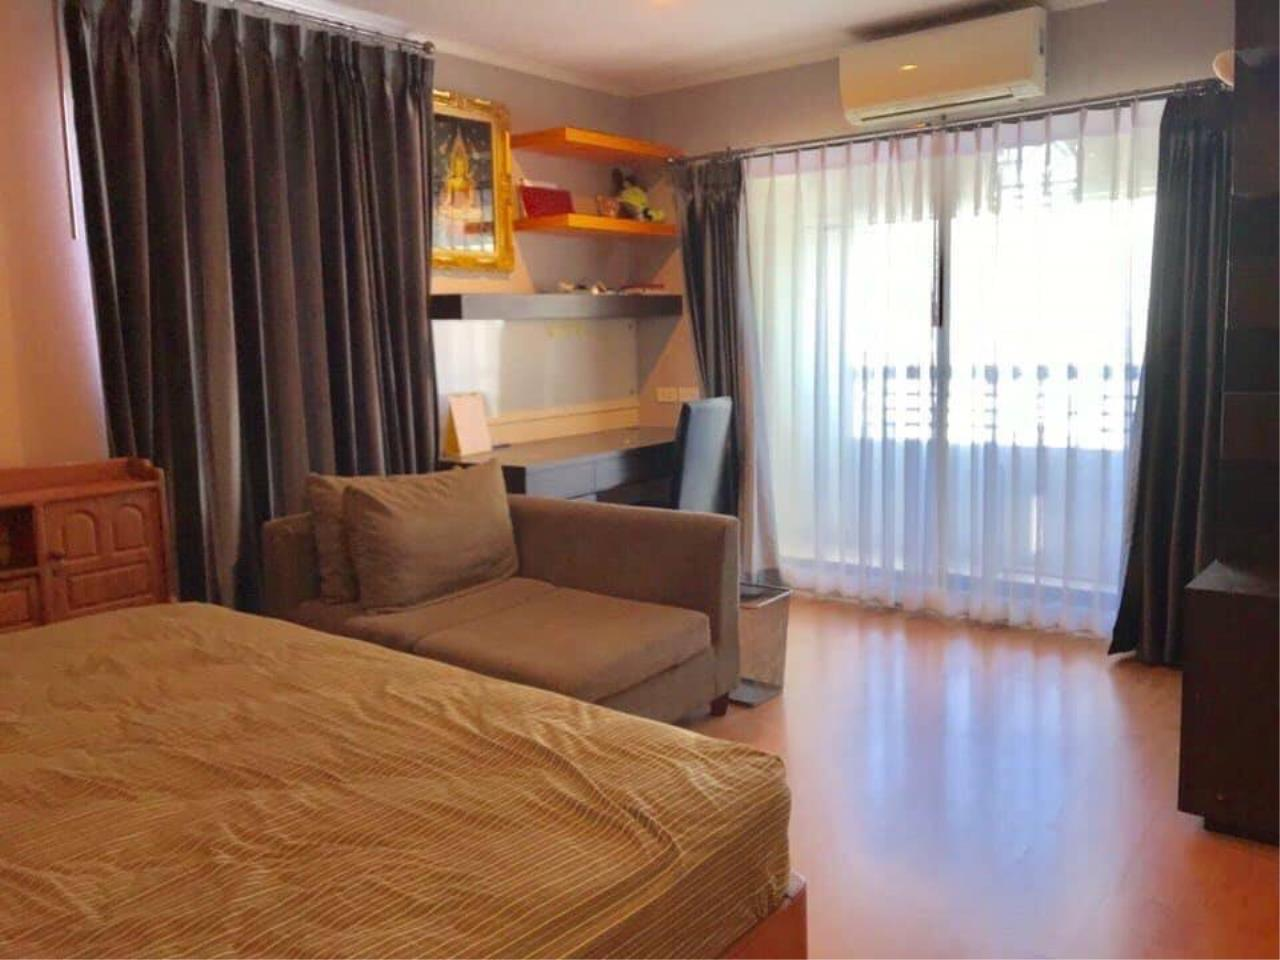 First Choice Properties by Su Agent Agency's KP036 LUMPINI VILLE PHAHOL – SUTTHISARN for sale 5.85M. 2bedroom. 69sq.m. 5